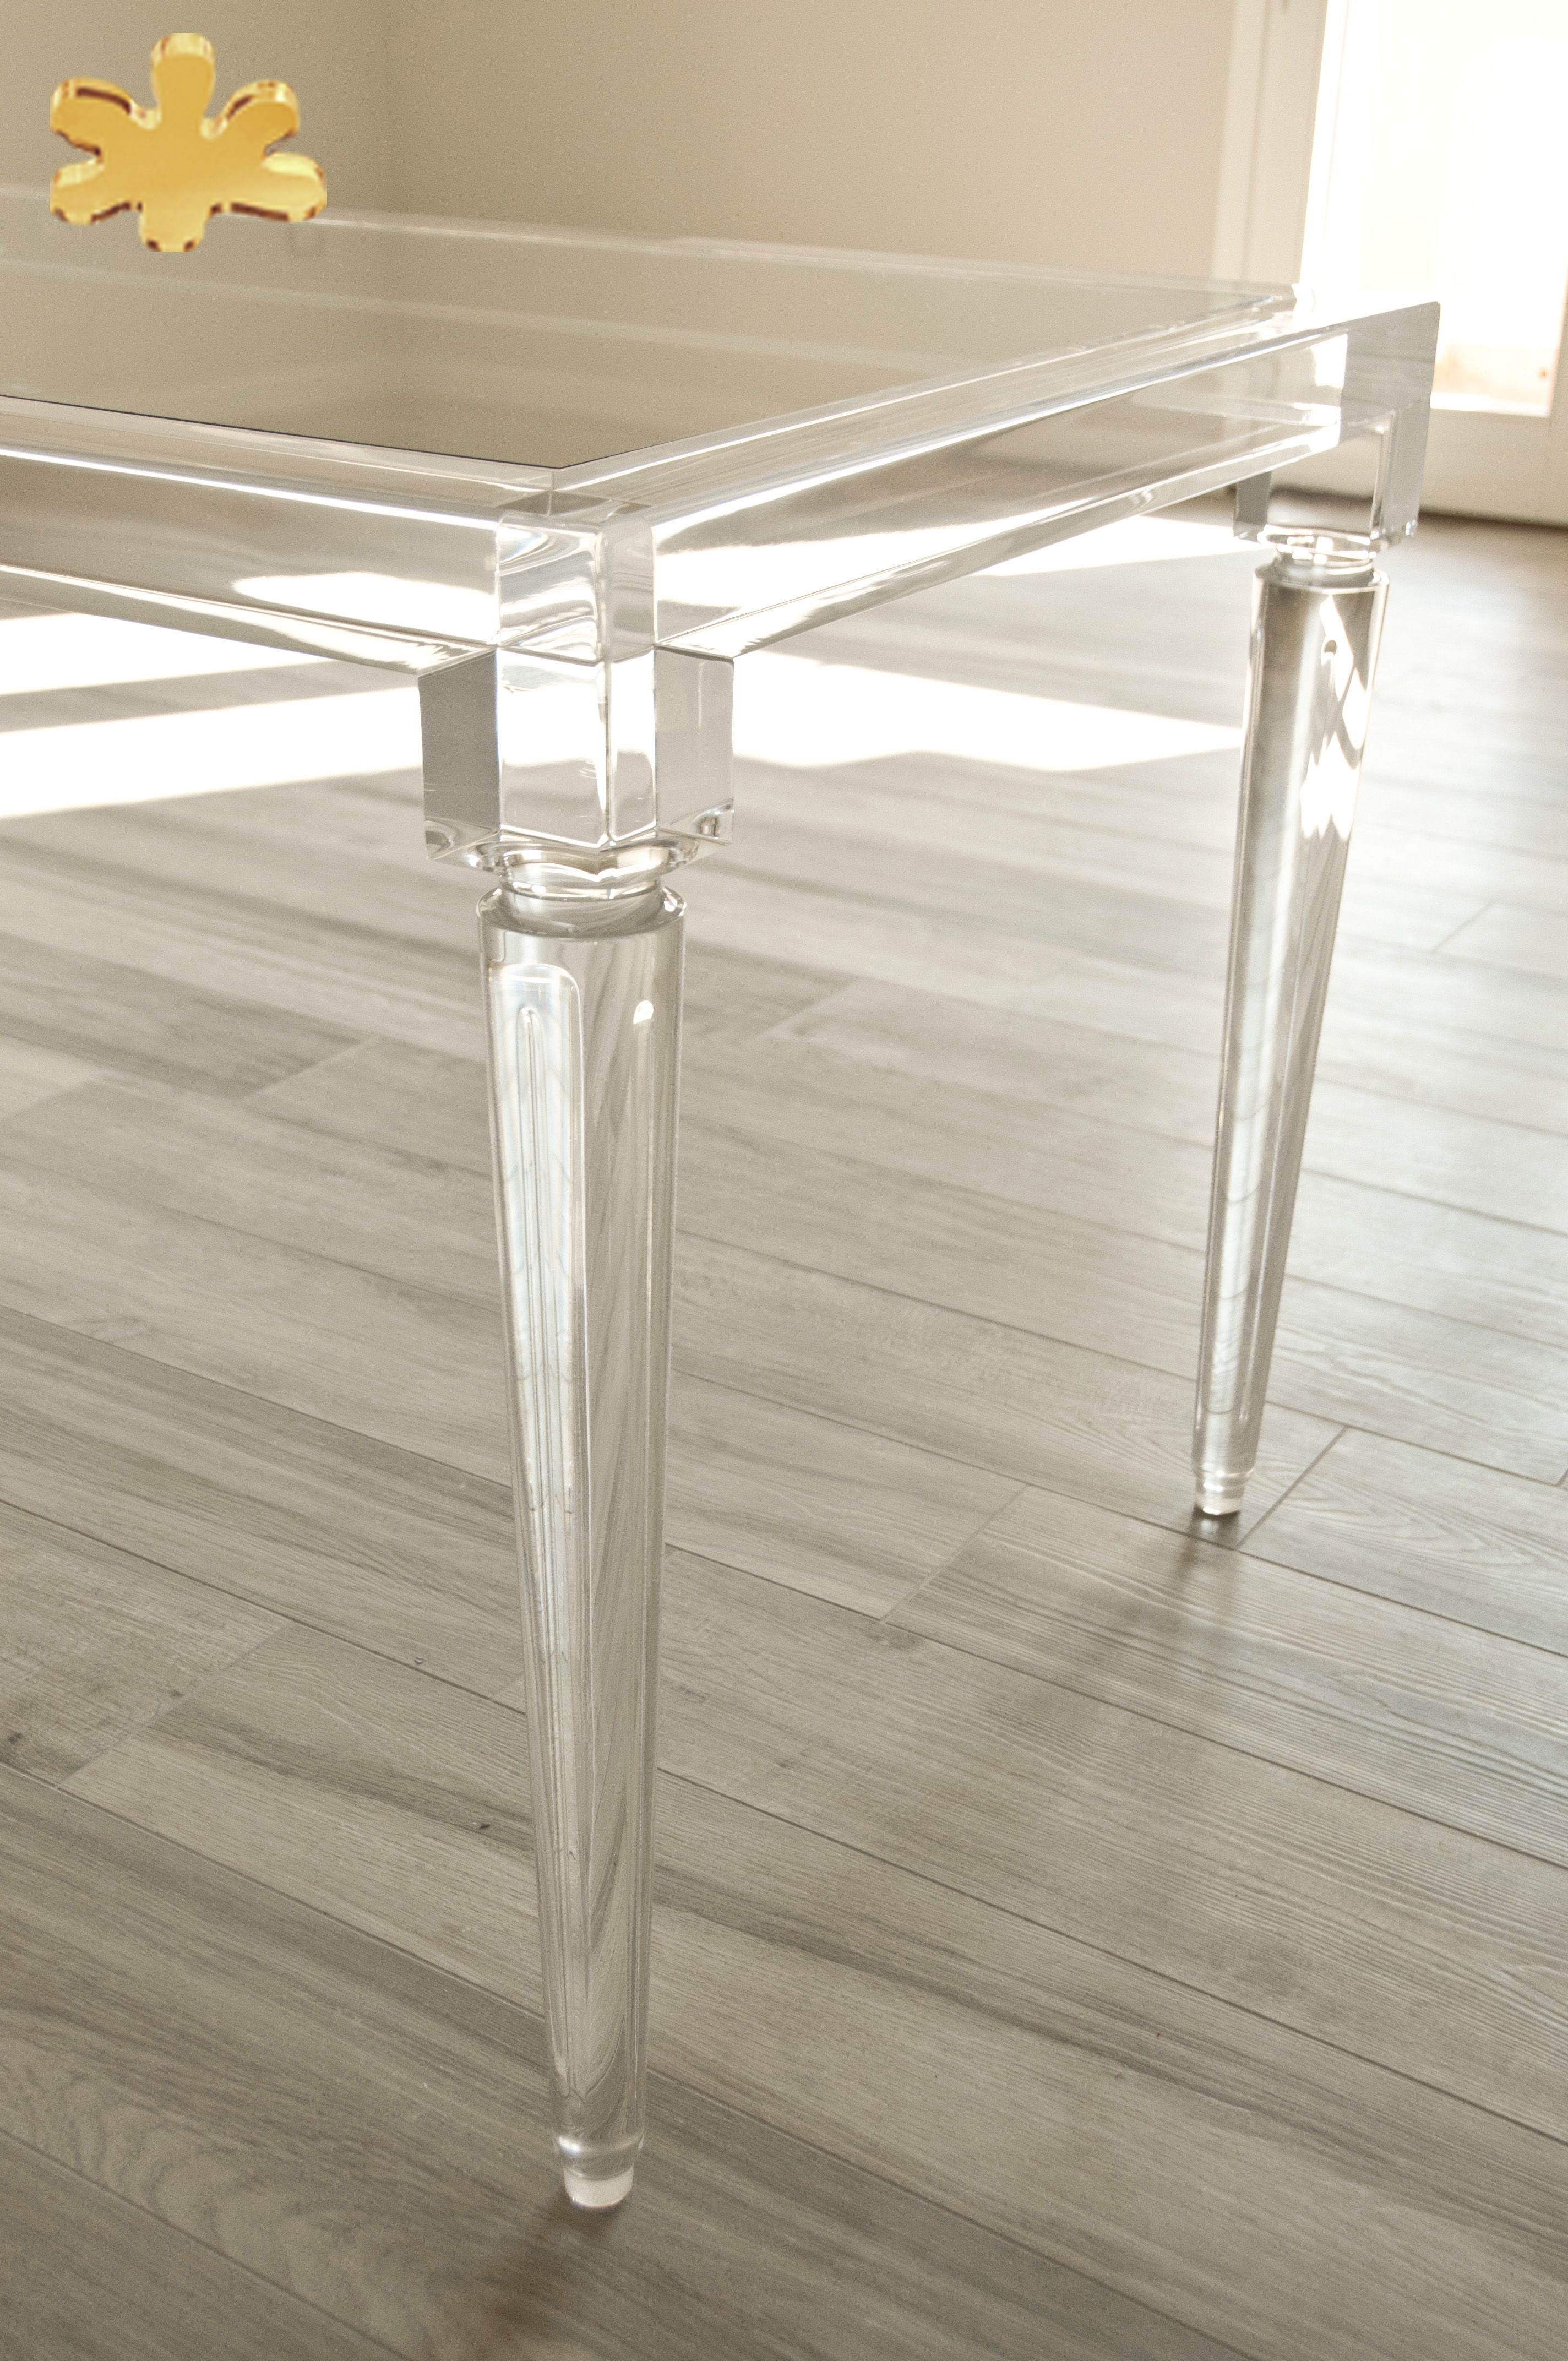 Acrylic Dining Tables Intended For 2017 Acrylic Furniture – Lucite Acrylic Dining Table – Tavoli Pranzo In (Gallery 1 of 25)